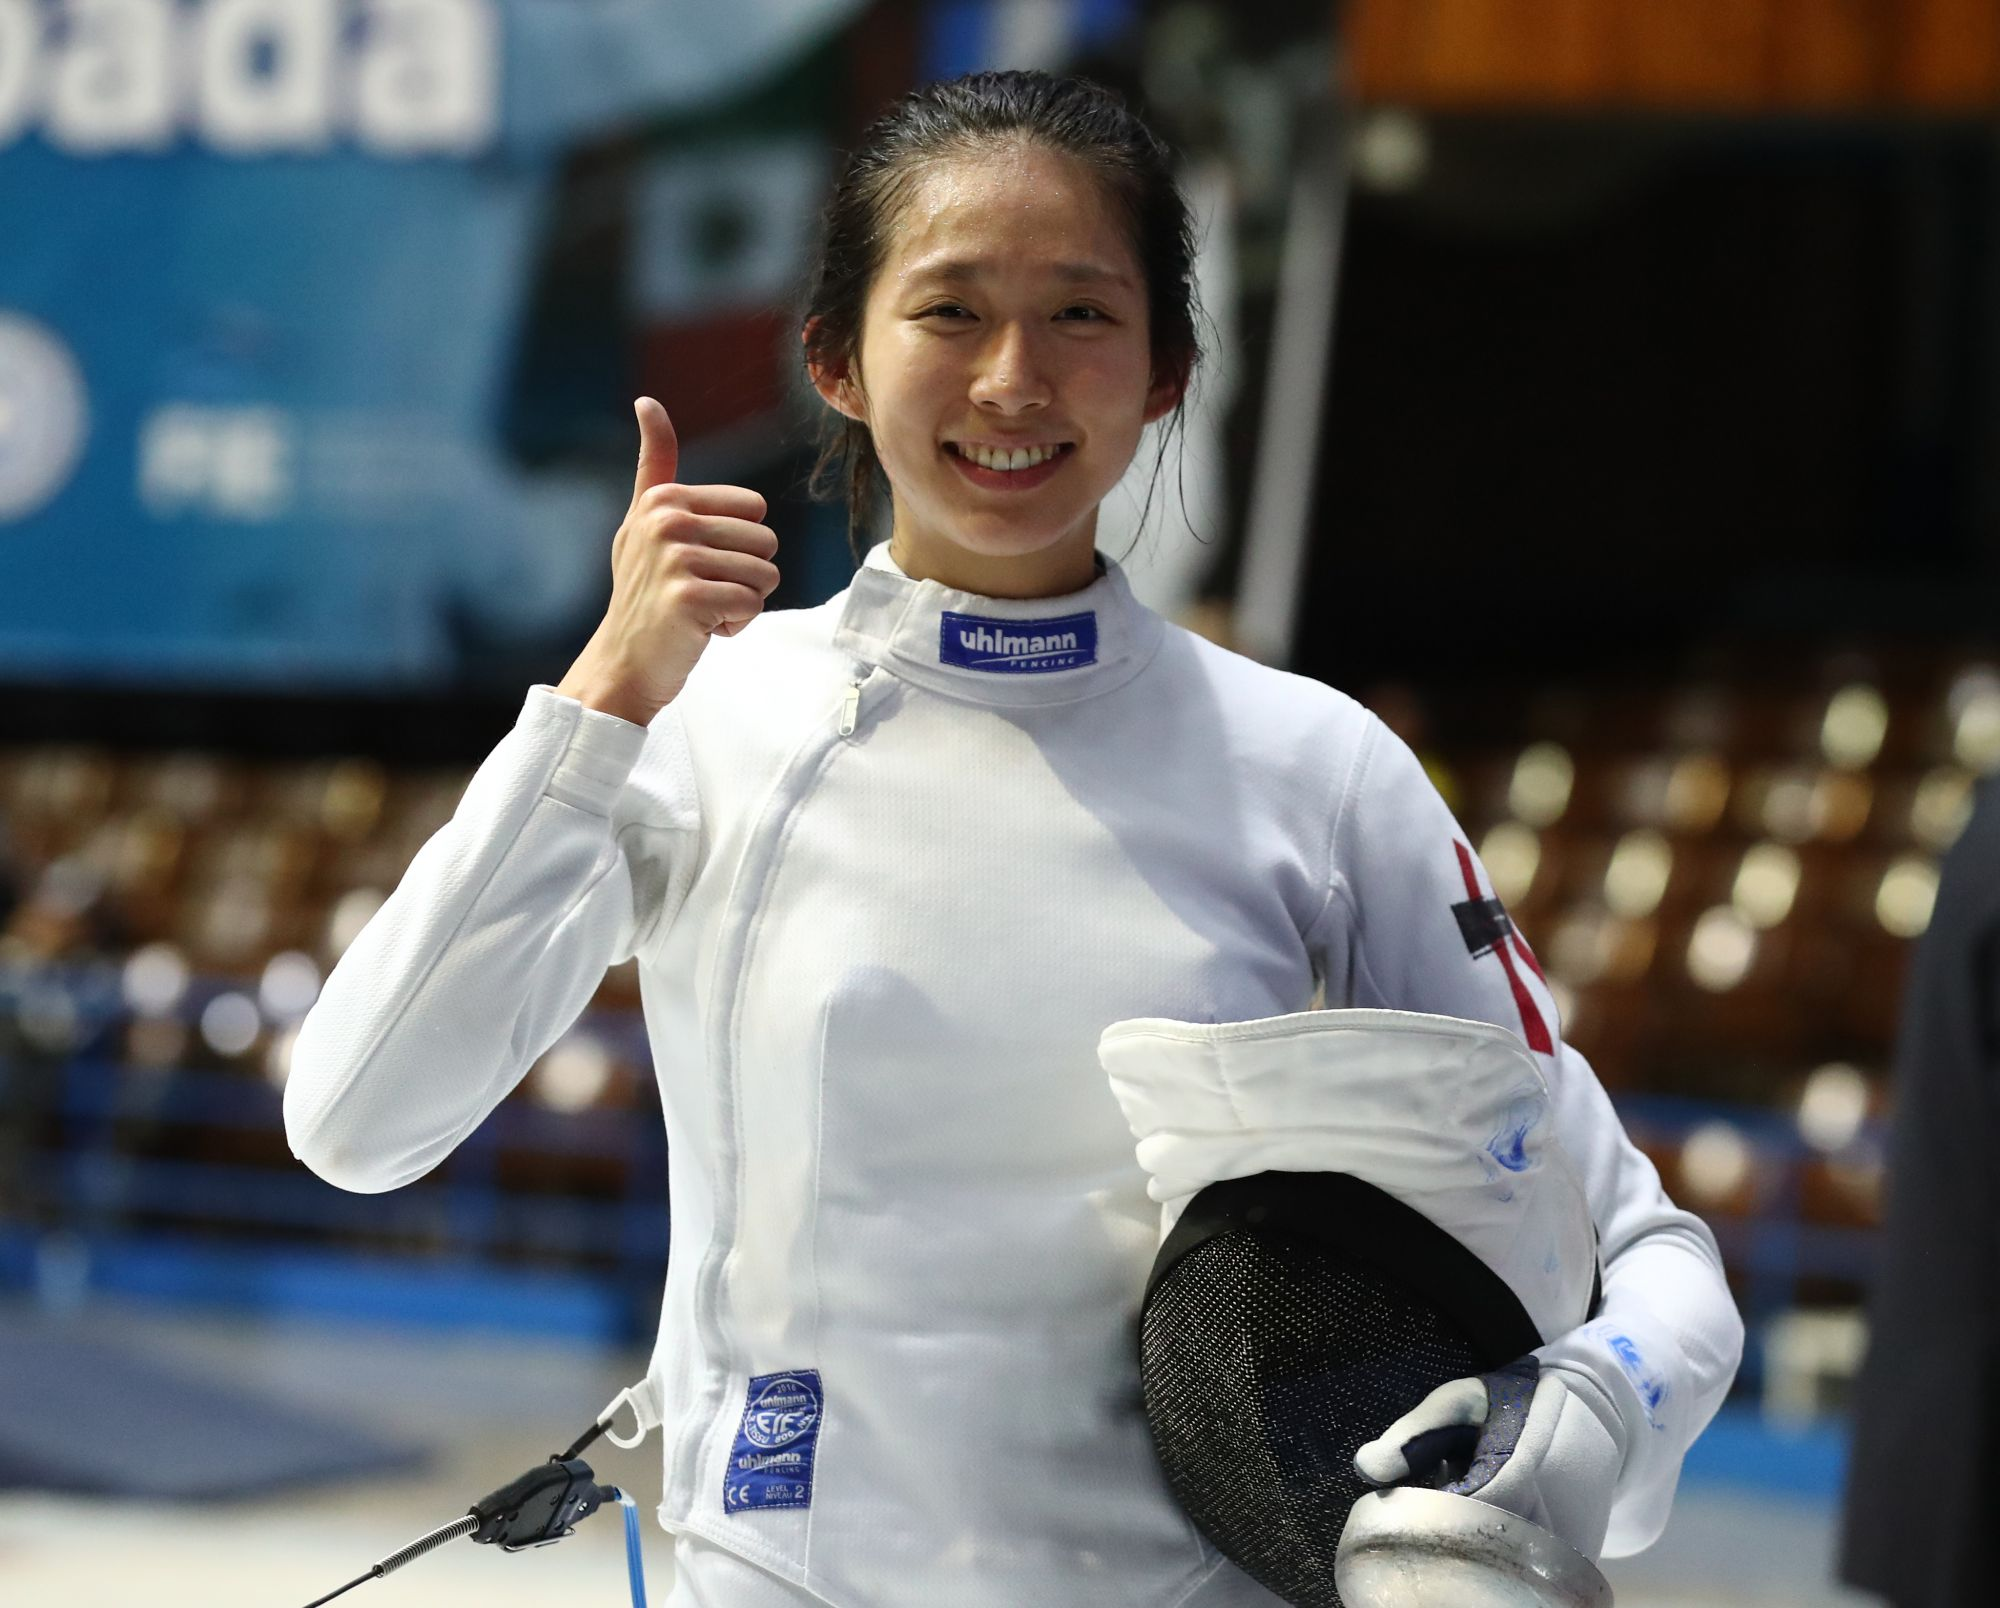 HAVANA, CUBA - JANUARY 12:  Man Wai Vivian Kong of Hong Kong China gives a thumbs up after a victory during the elimination rounds at the Women's Epee World Cup on January 12, 2019 at the Coliseo de la Ciudad Deportiva in Havana, Cuba. (Photo by Devin Manky/Getty Images)